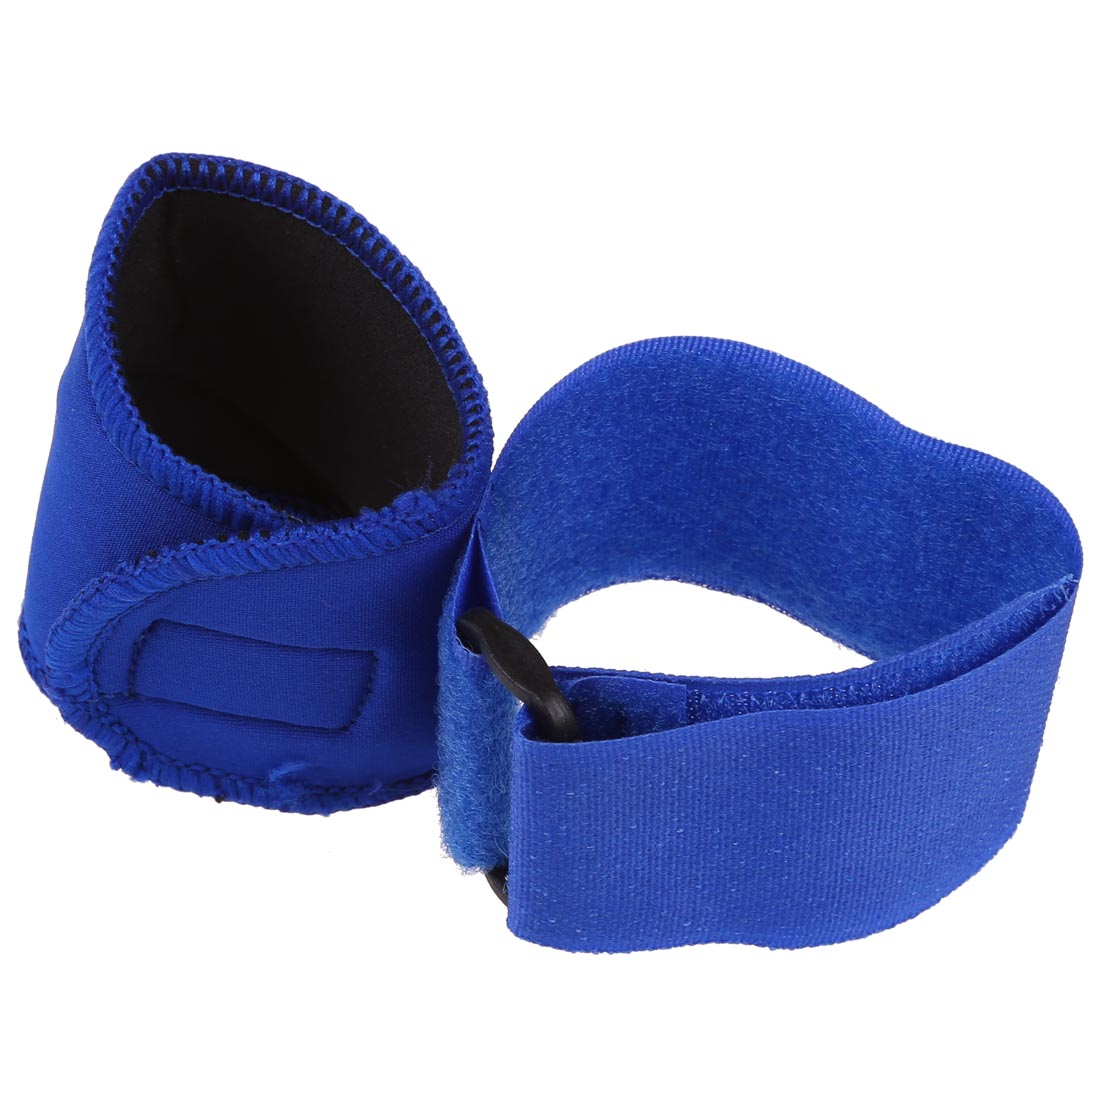 Protect Your Wrist-Universal Wrist Brace Wrist Strap Support Strengthens Strong Tendons and Muscles Gout Ligament Gym